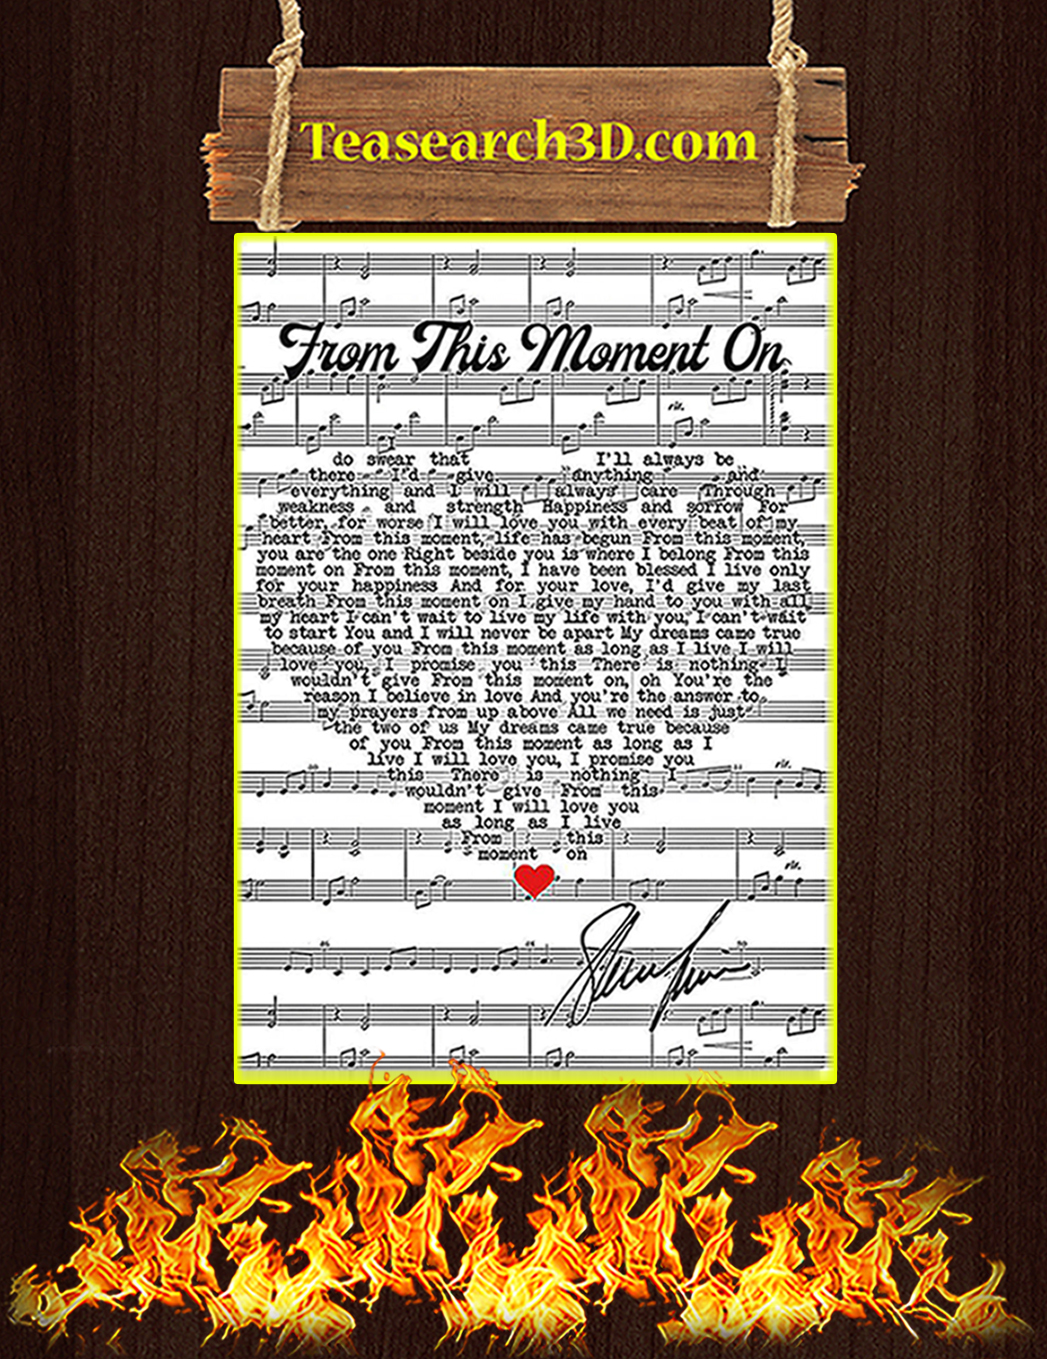 From this moment on shania signature poster A1